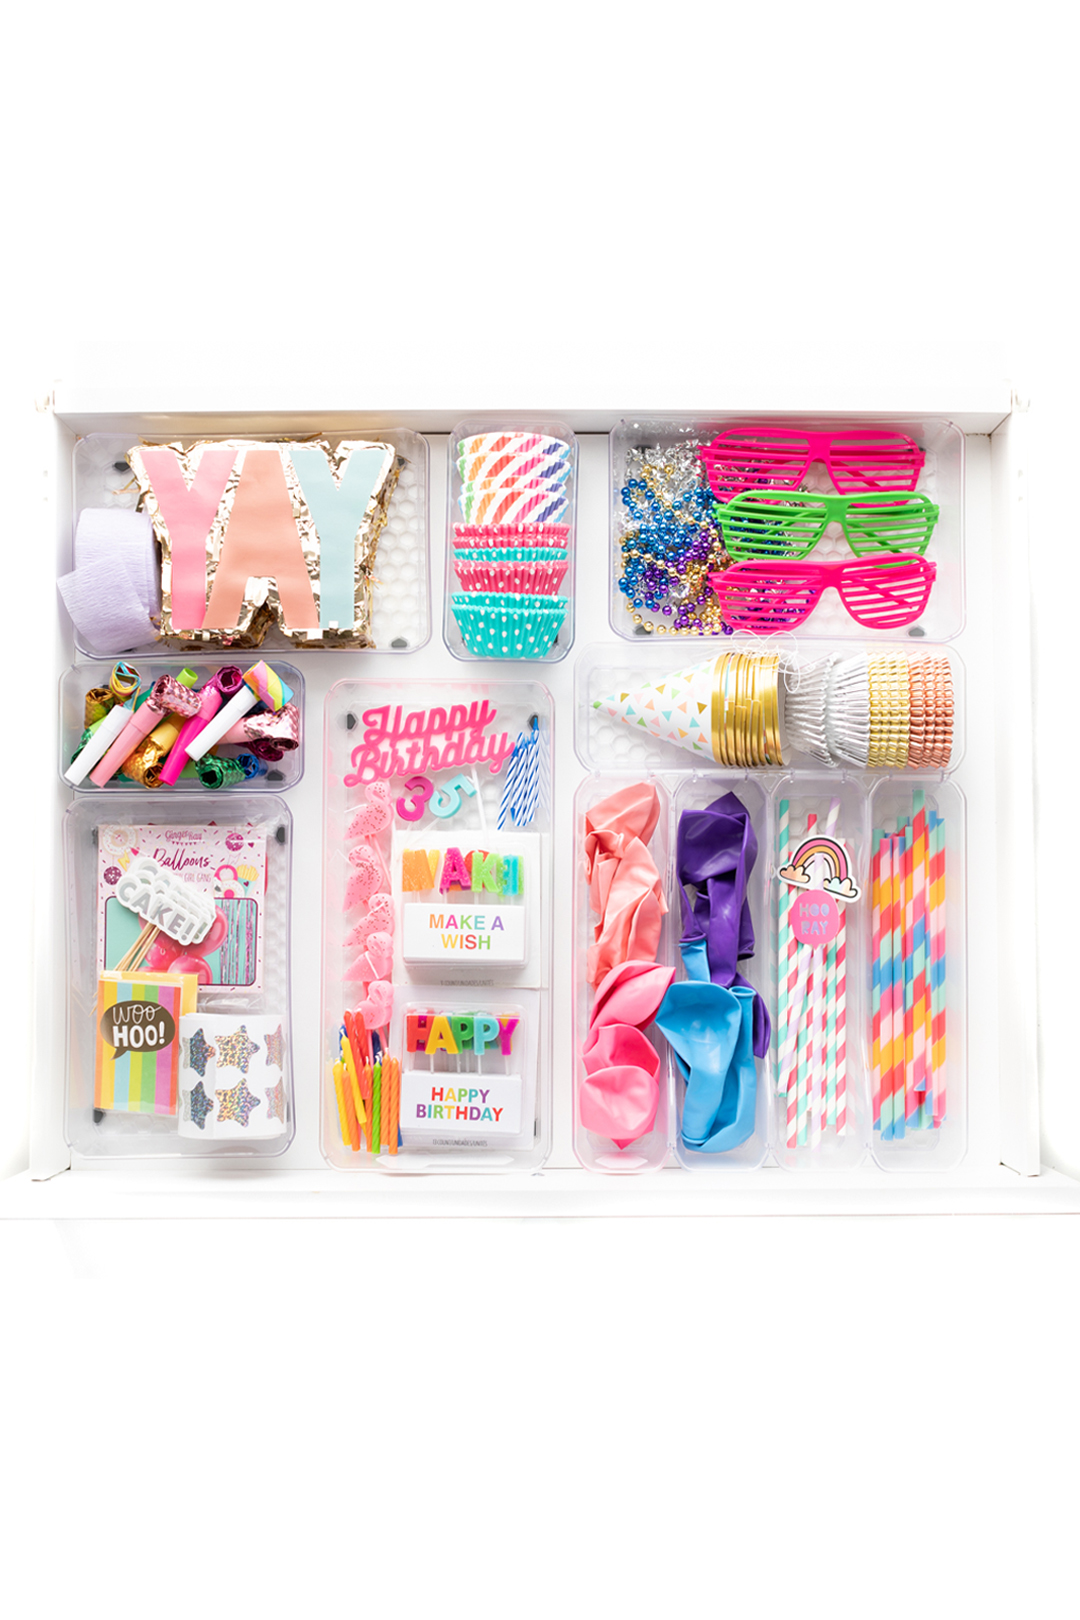 inside view of a celebration drawer. Party supply drawer instead of a junk drawer. Filled with common and basic party supplies for everyday celebrations.